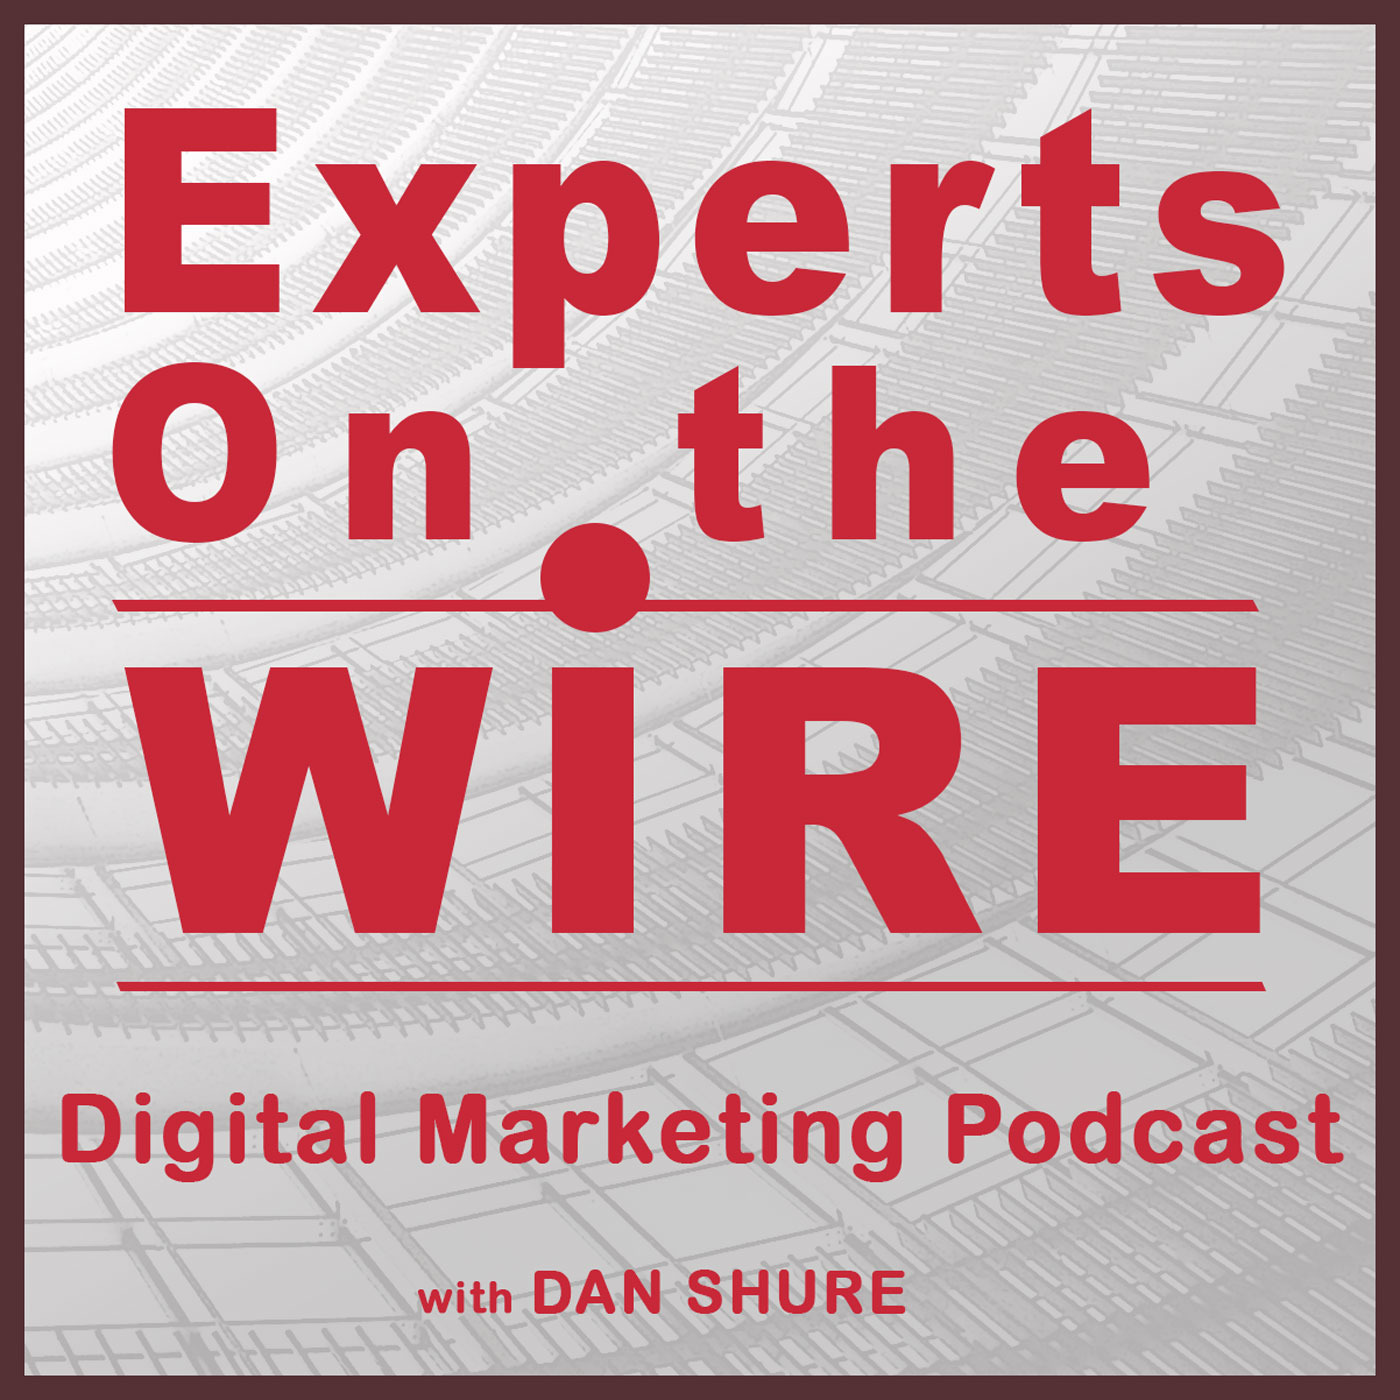 Experts on the wire by Dan Shure is a digital marketing and social media podcast